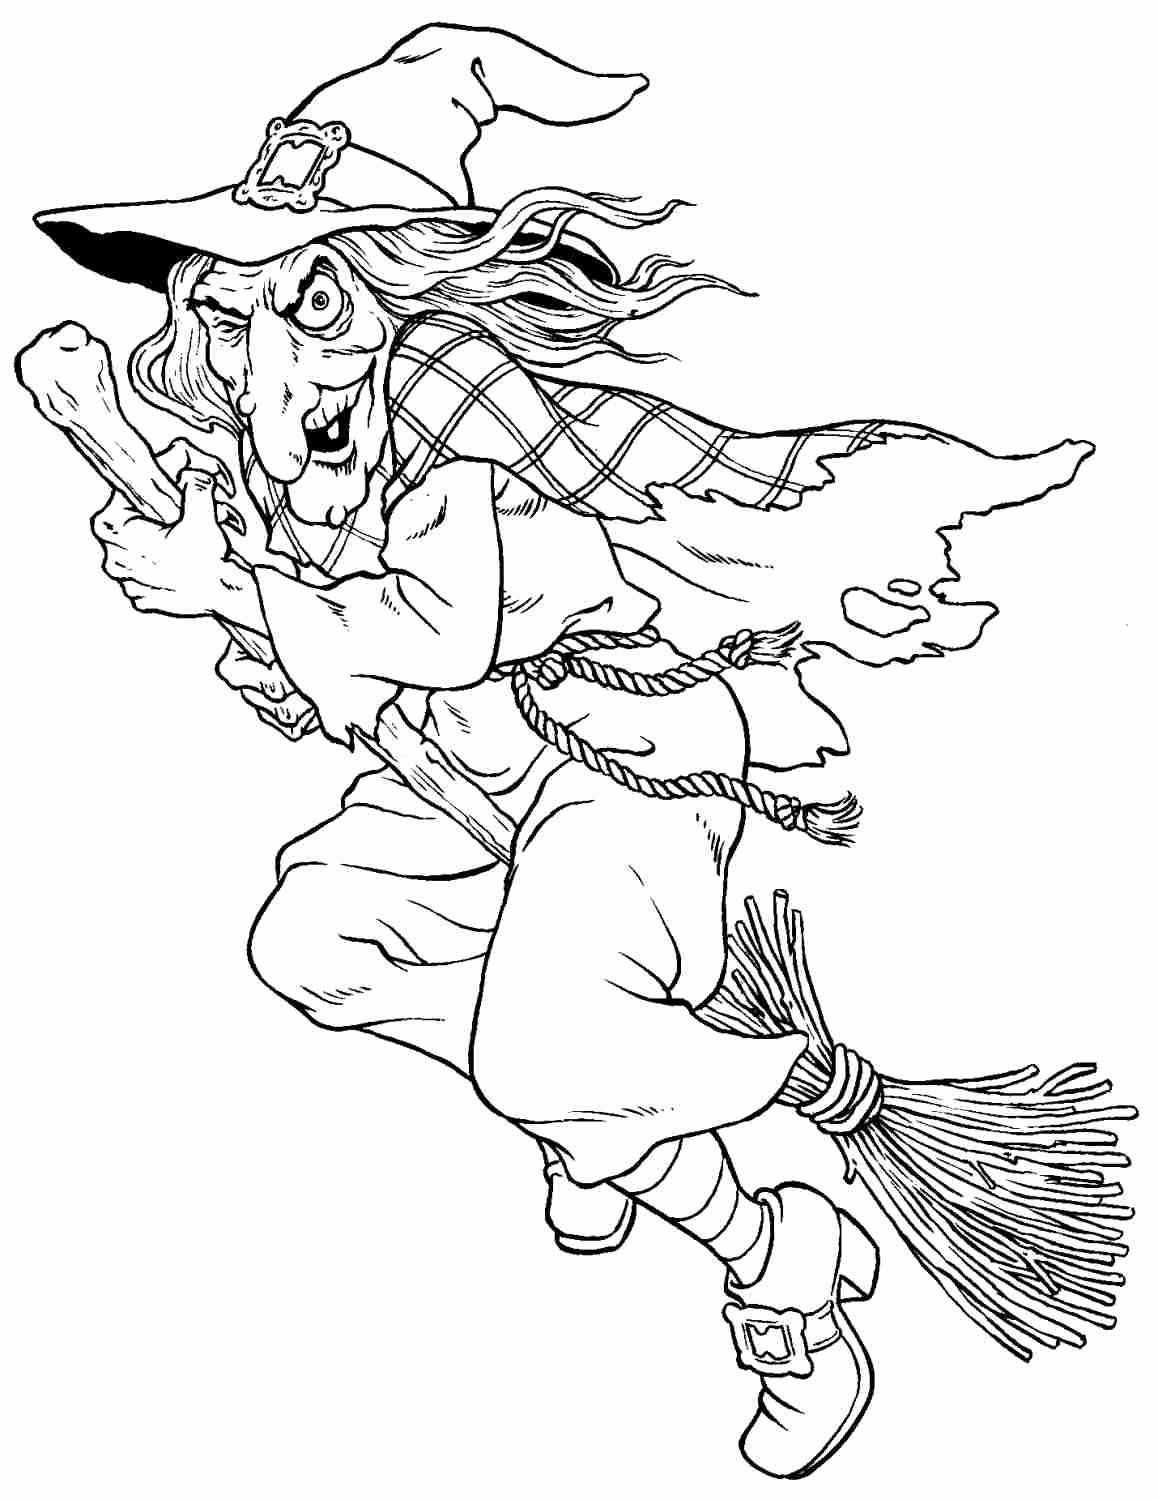 Witch Coloring Pages For Adults Luxury Witches Colouring